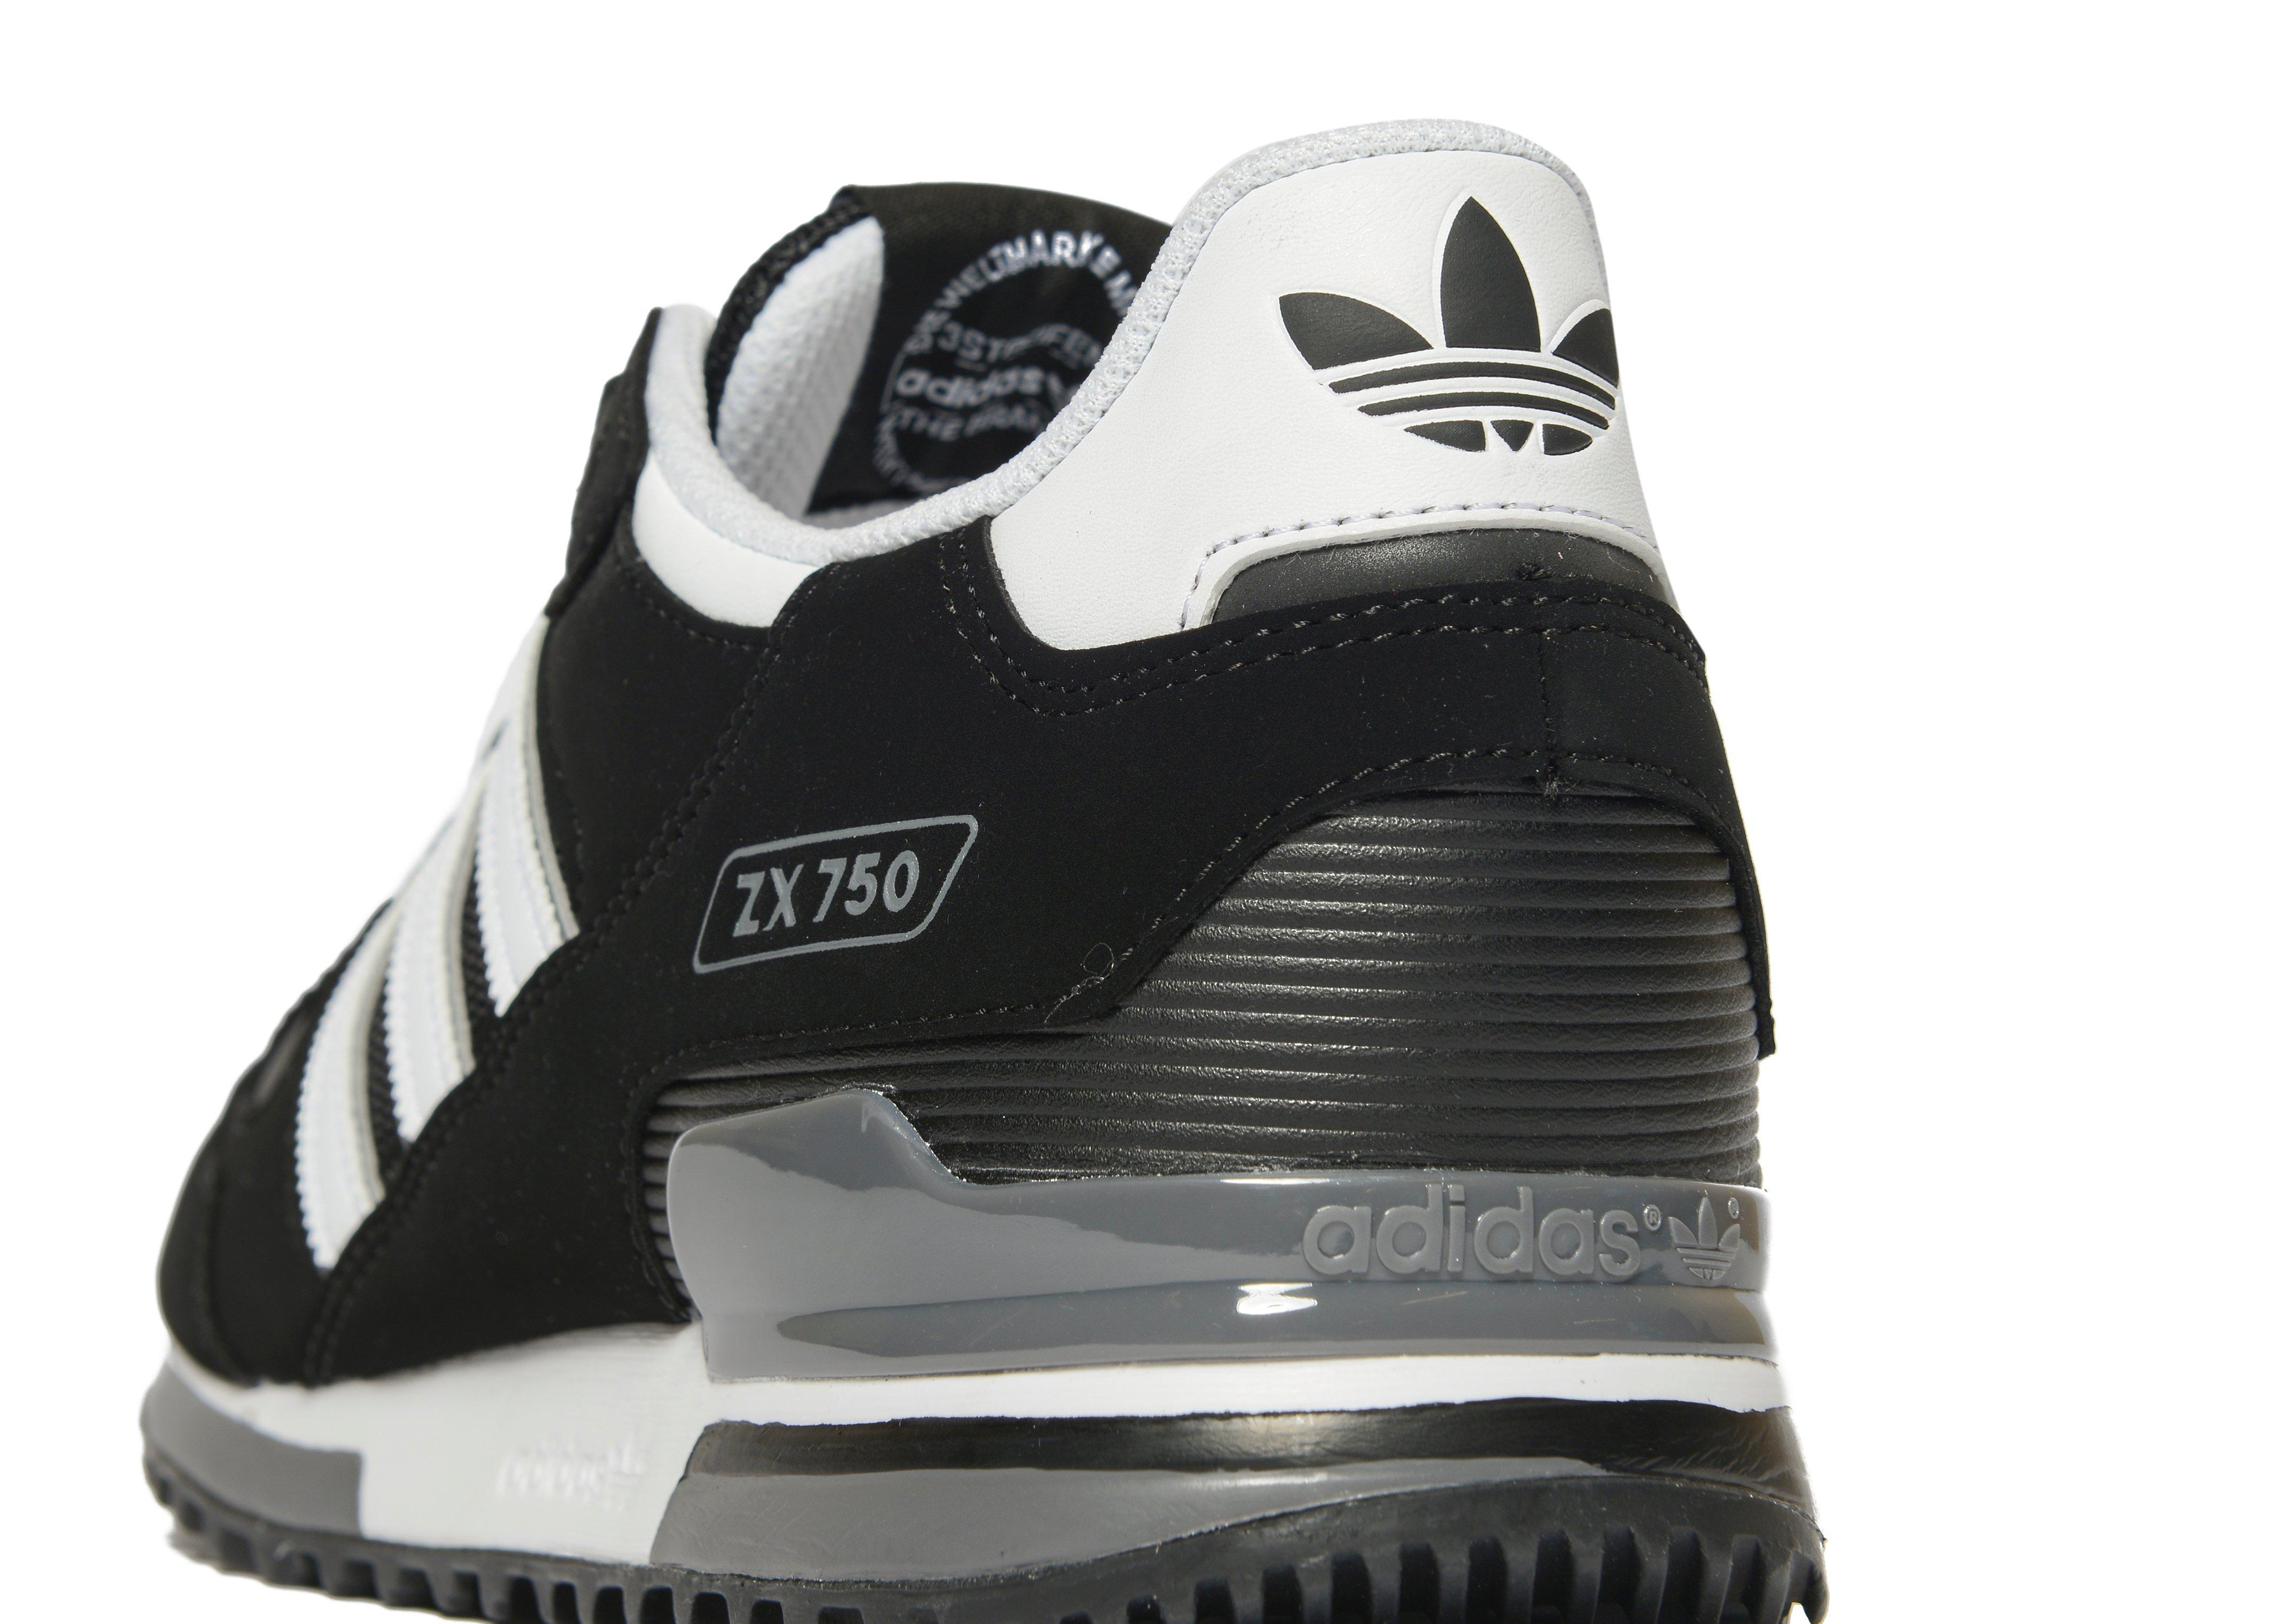 jd sports adidas zx 750 Off 65% s4ssecurity.in